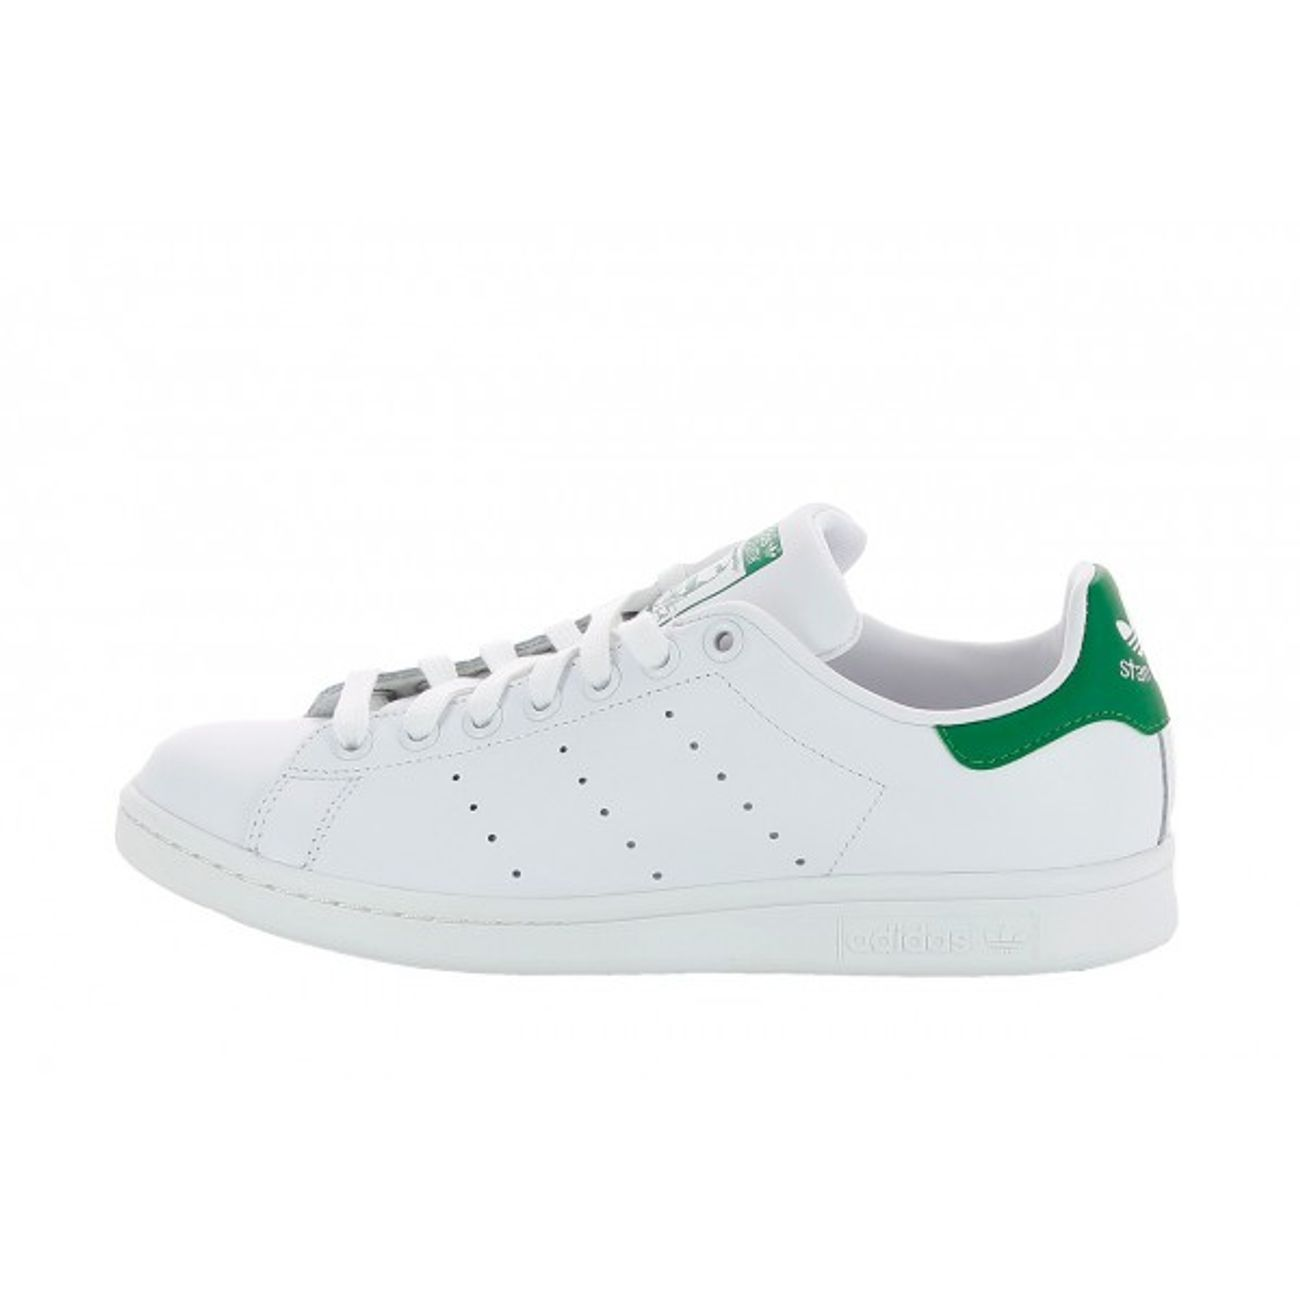 Mode Lifestyle homme ADIDAS ORIGINALS Basket adidas Originals Stan Smith Vintage Ref. M20324